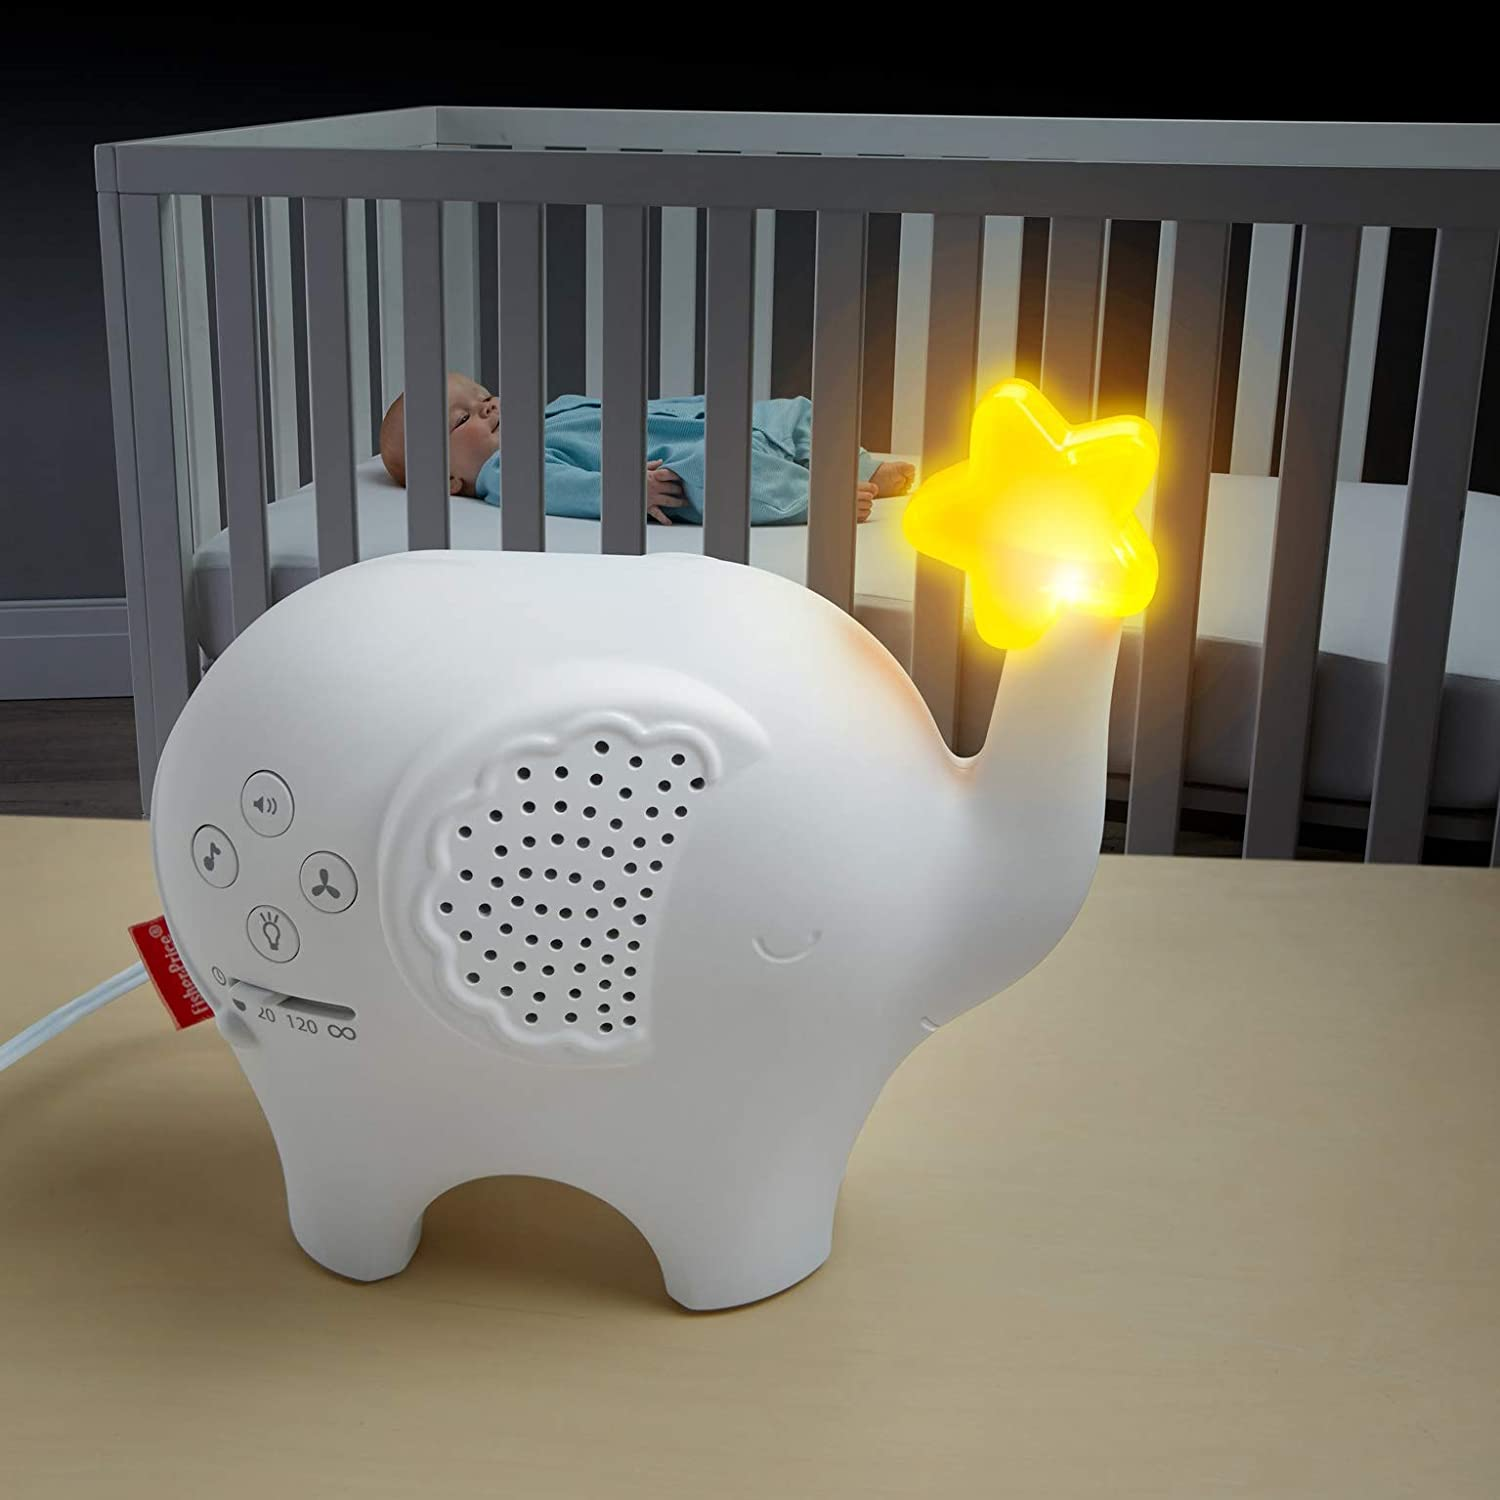 Amazon.com: Elefante con música y luces Fisher-Price ...